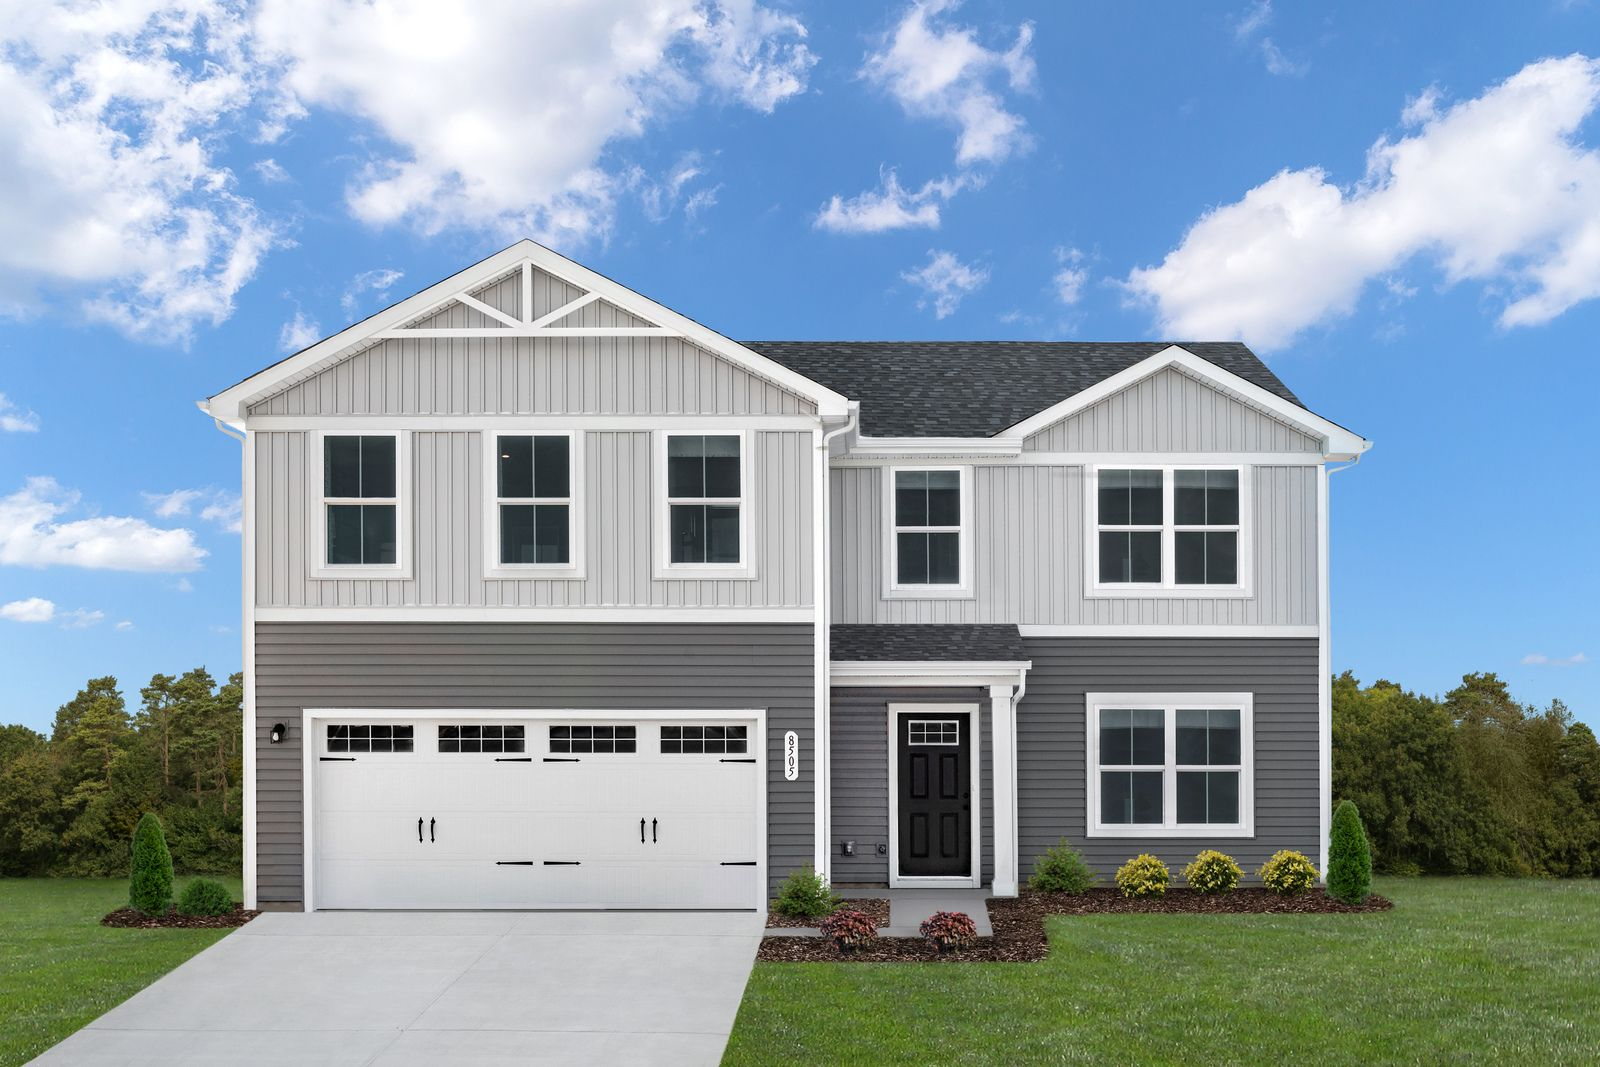 Own a new home in a tree-lined community 4 mi to Clemson & 1 mile to Pendleton's Town Square:LAST CHANCE to own in this new community with only a few homesites remaining!Schedule your visit today!